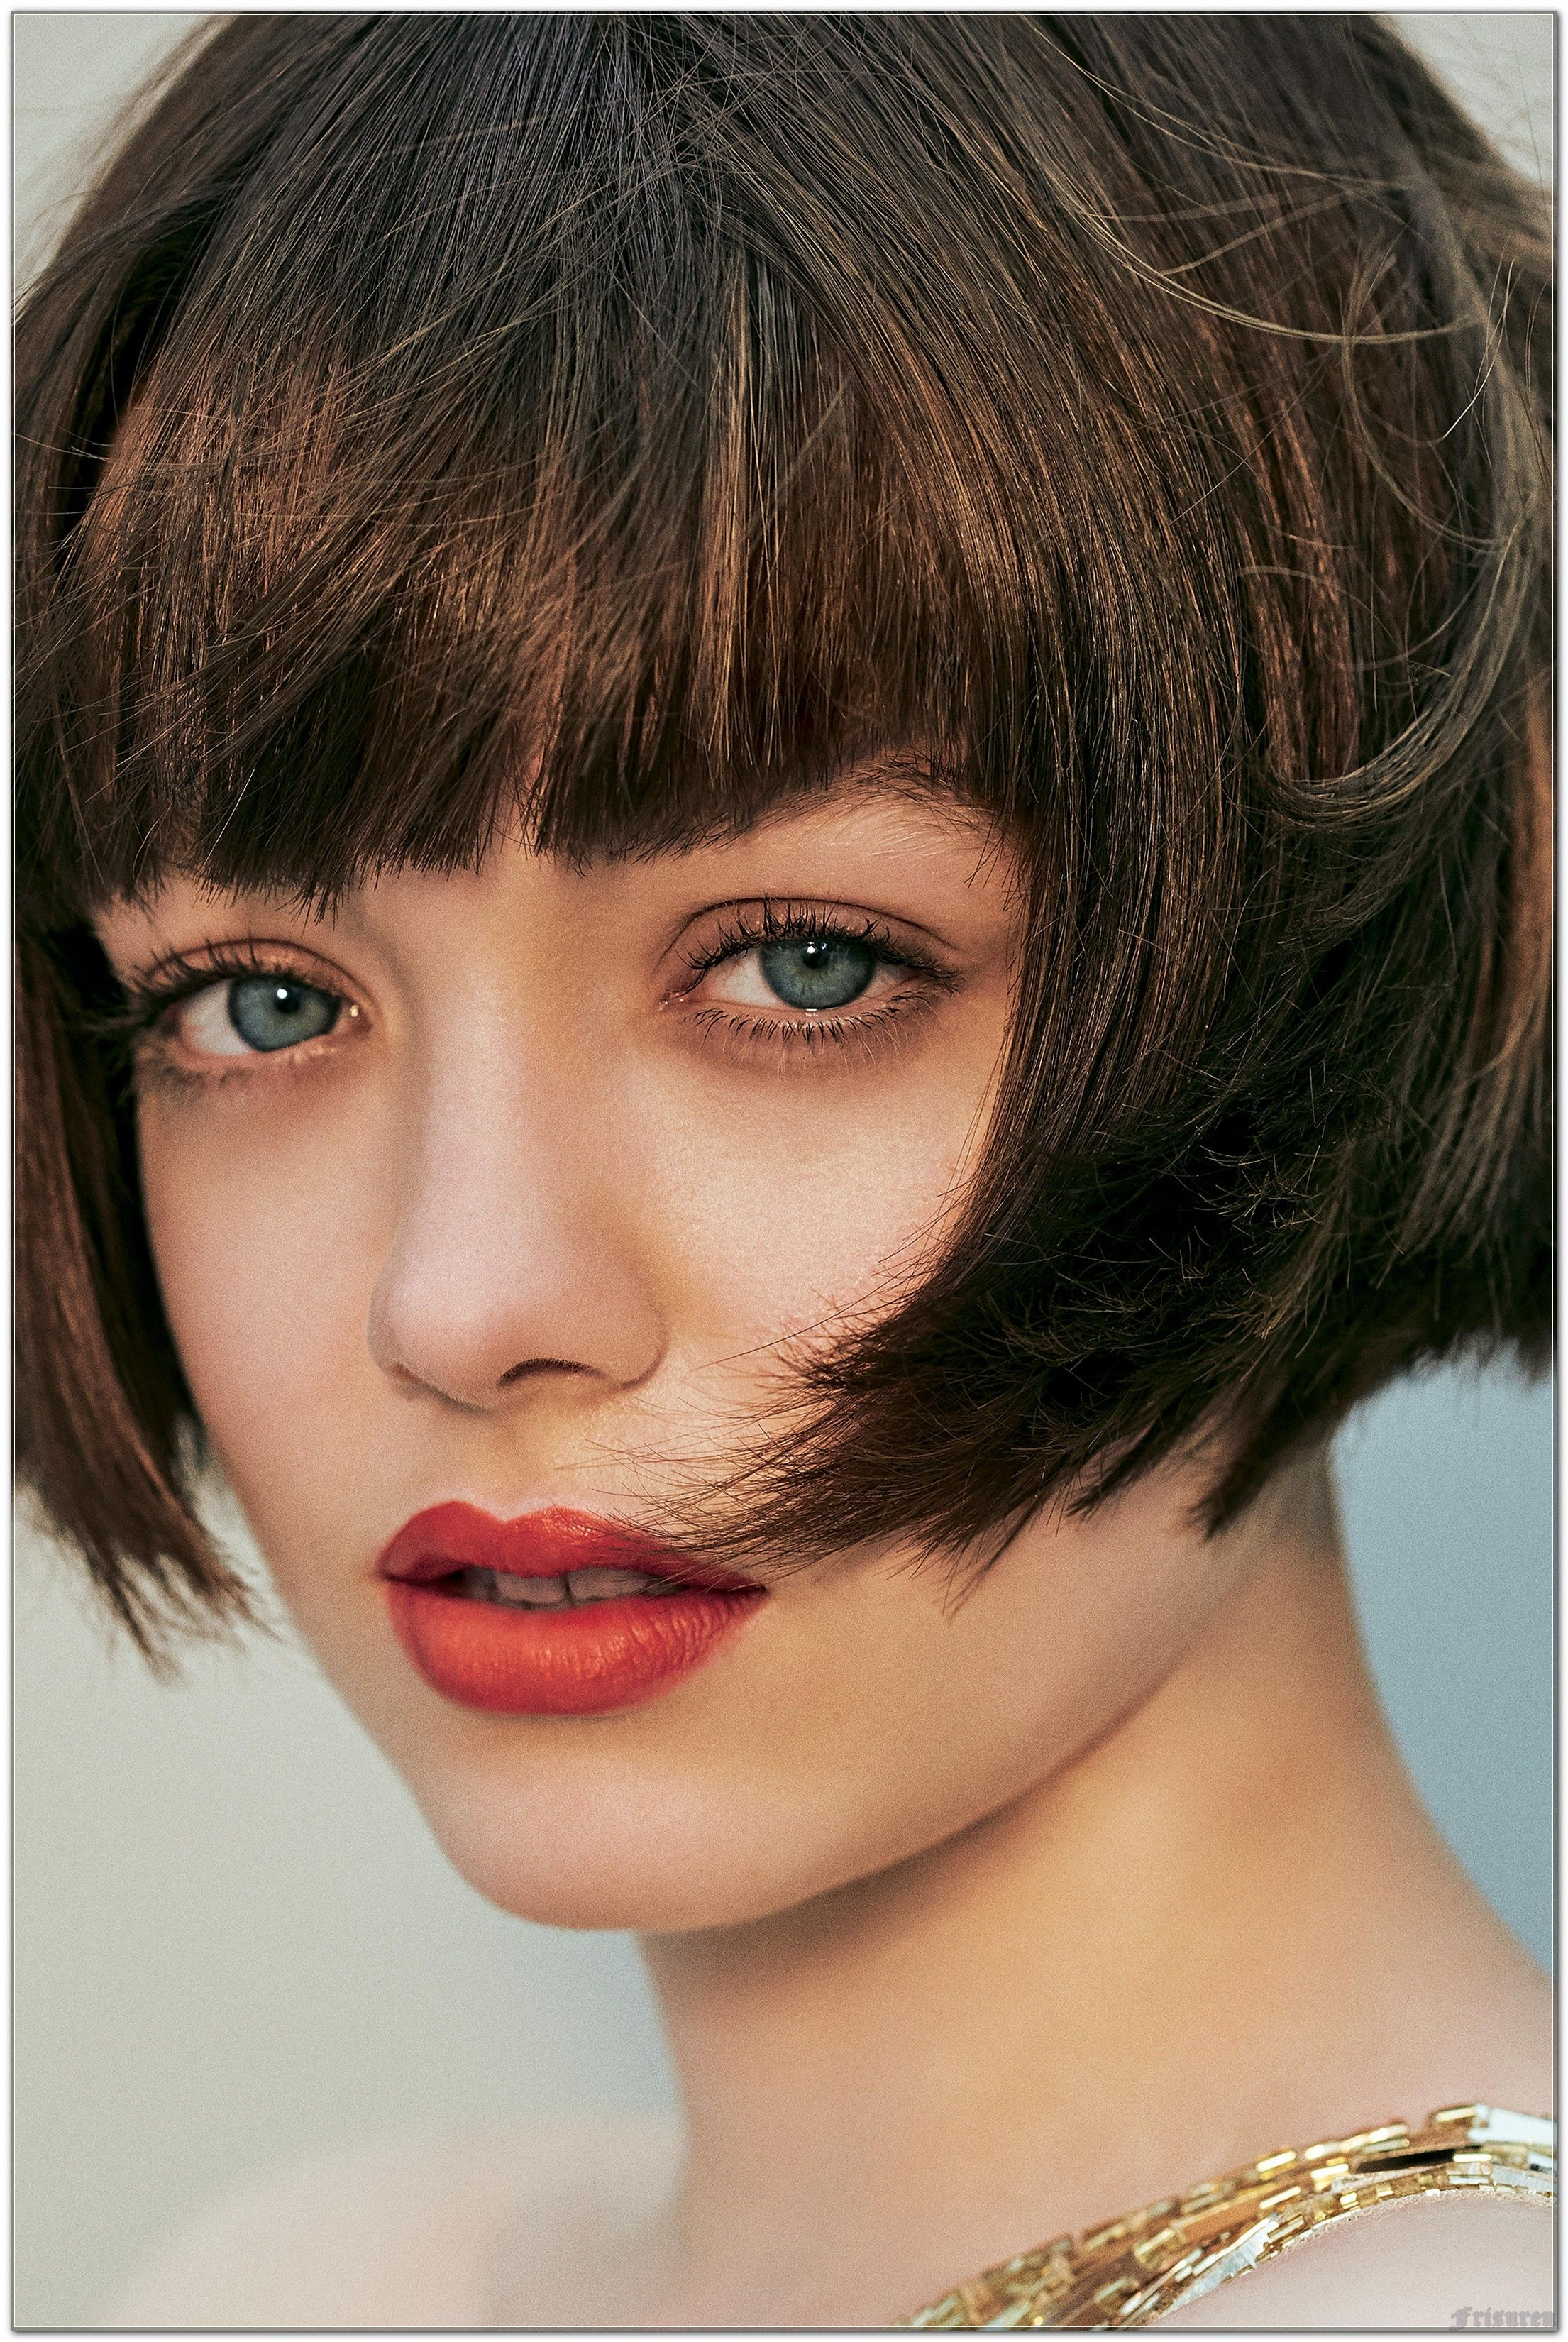 How To Turn Your Frisuren From Zero To Hero for 2021